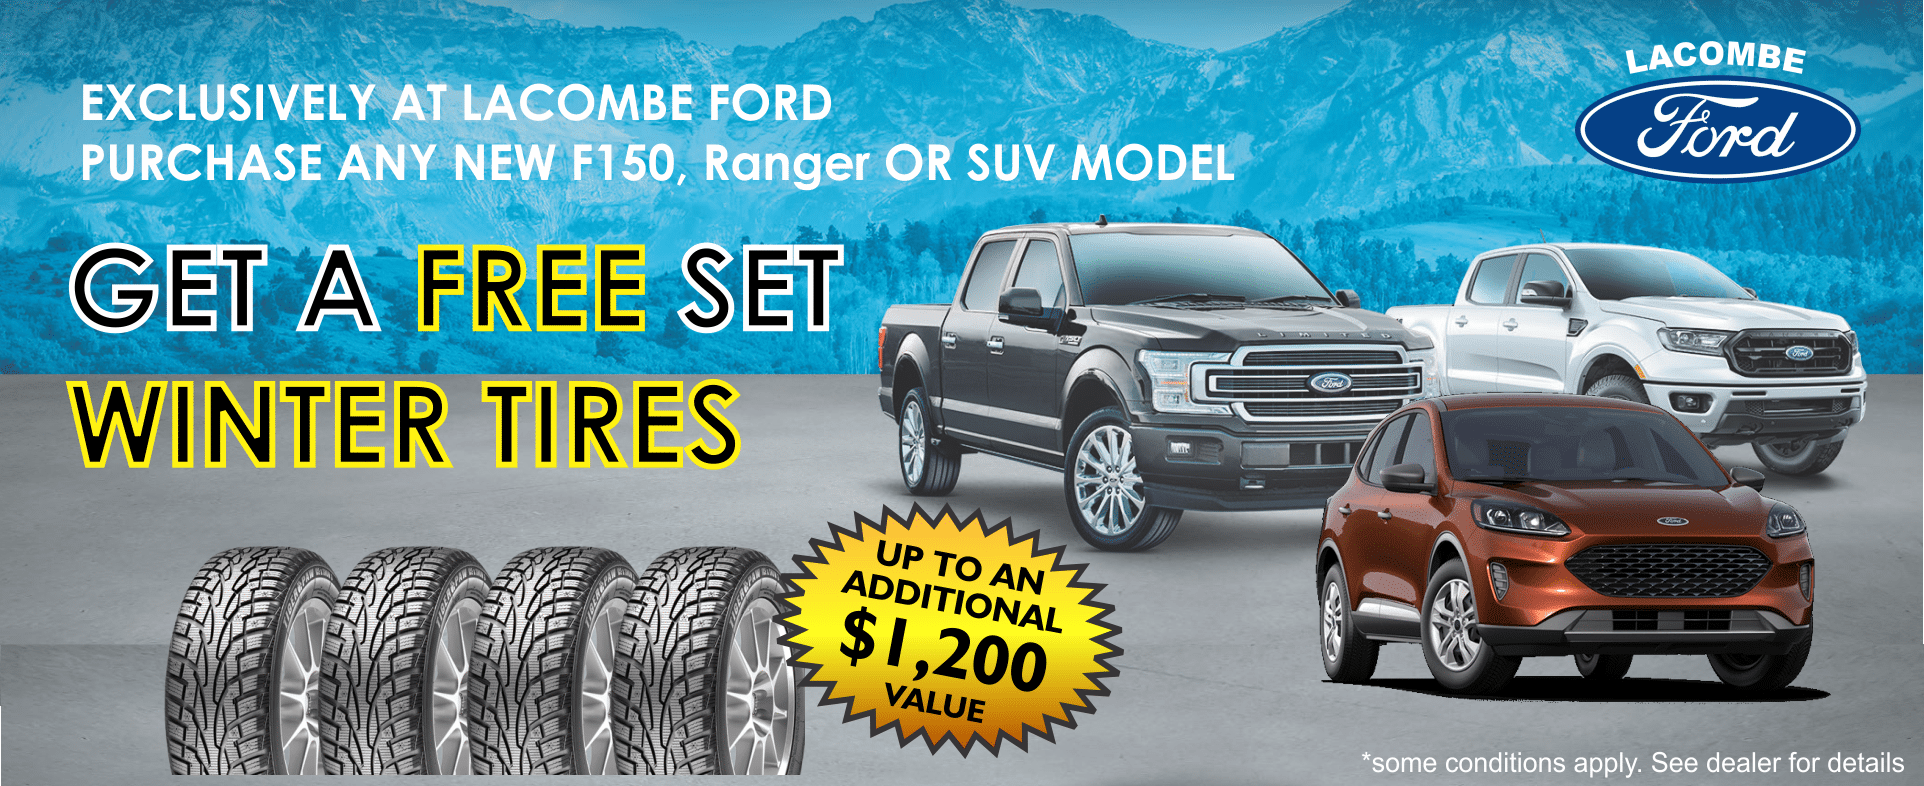 Ford New Vehicle Inventory at Lacombe Ford